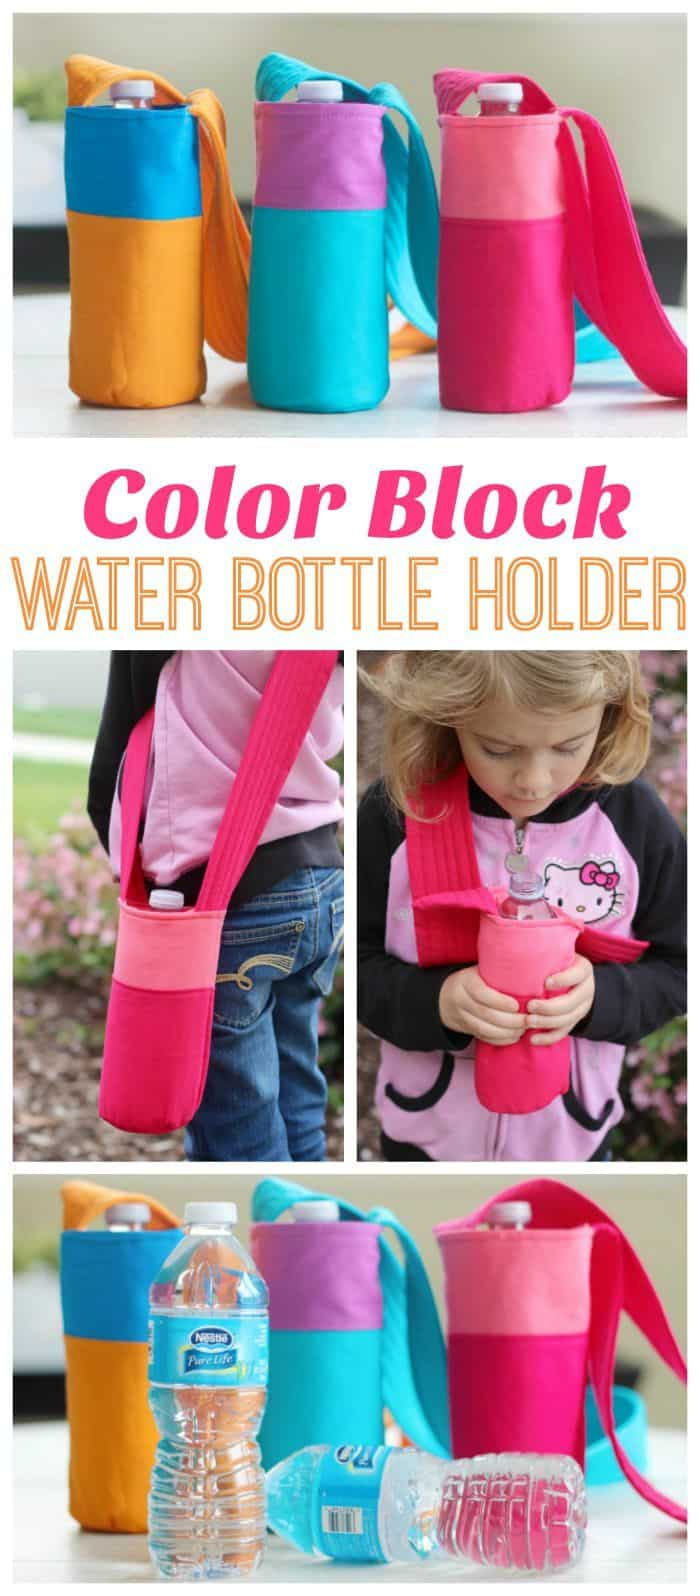 Colour block water bottle holder